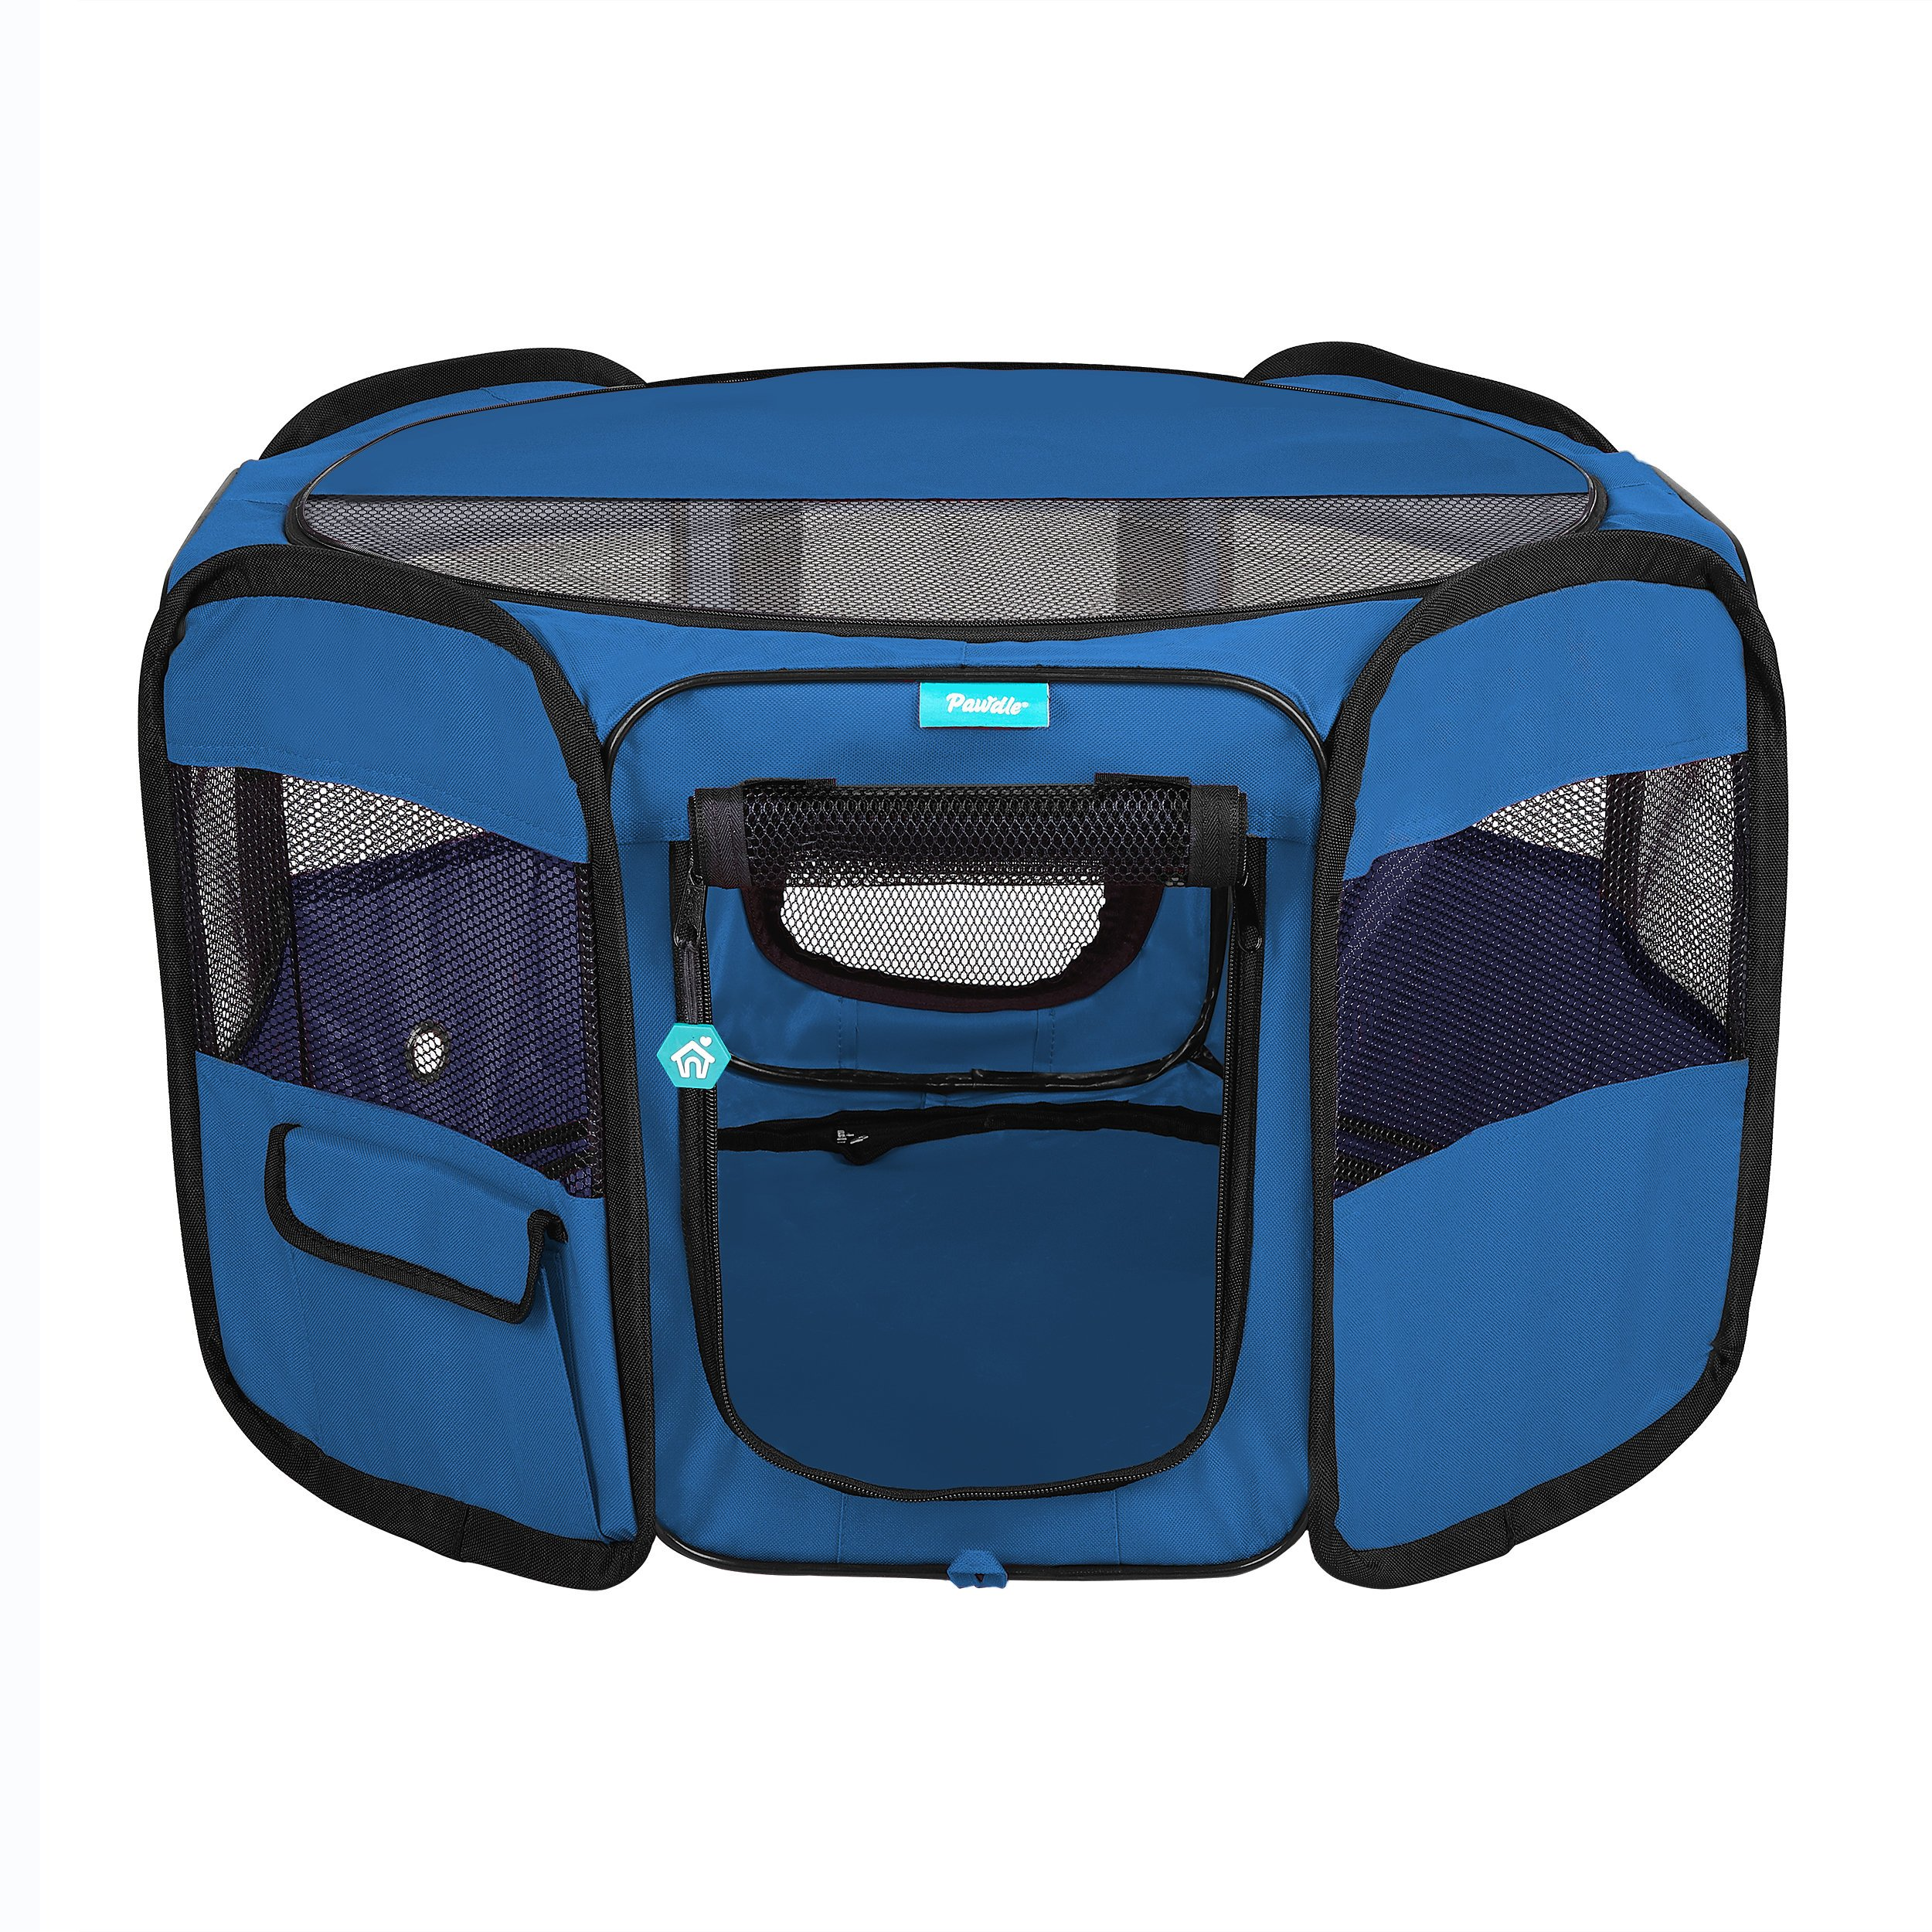 Deluxe Premium Pet Dog Playpen Portable Soft Dog Exercise Pen Kennel with Carry Bag for Dogs, Cats, Kittens, and All Pets (Small, Blue) by Pawdle